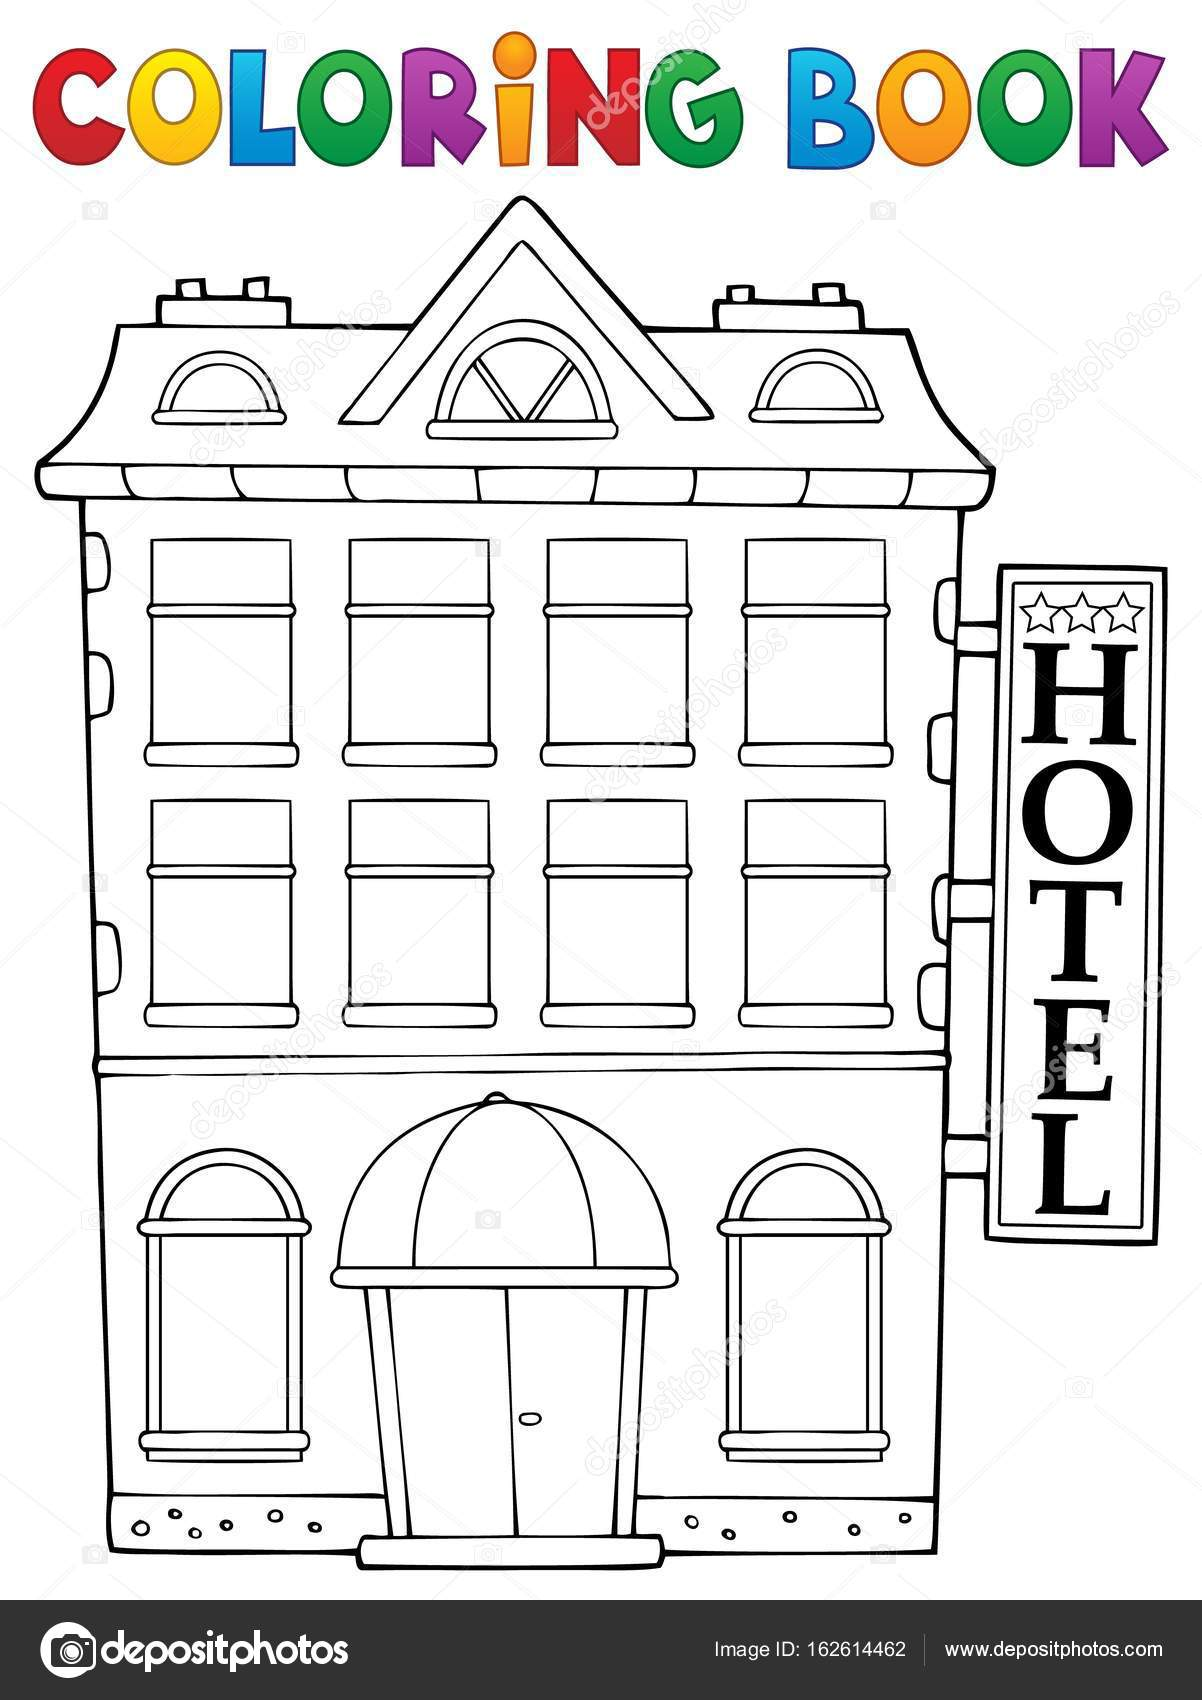 coloring pages hotel - photo#11